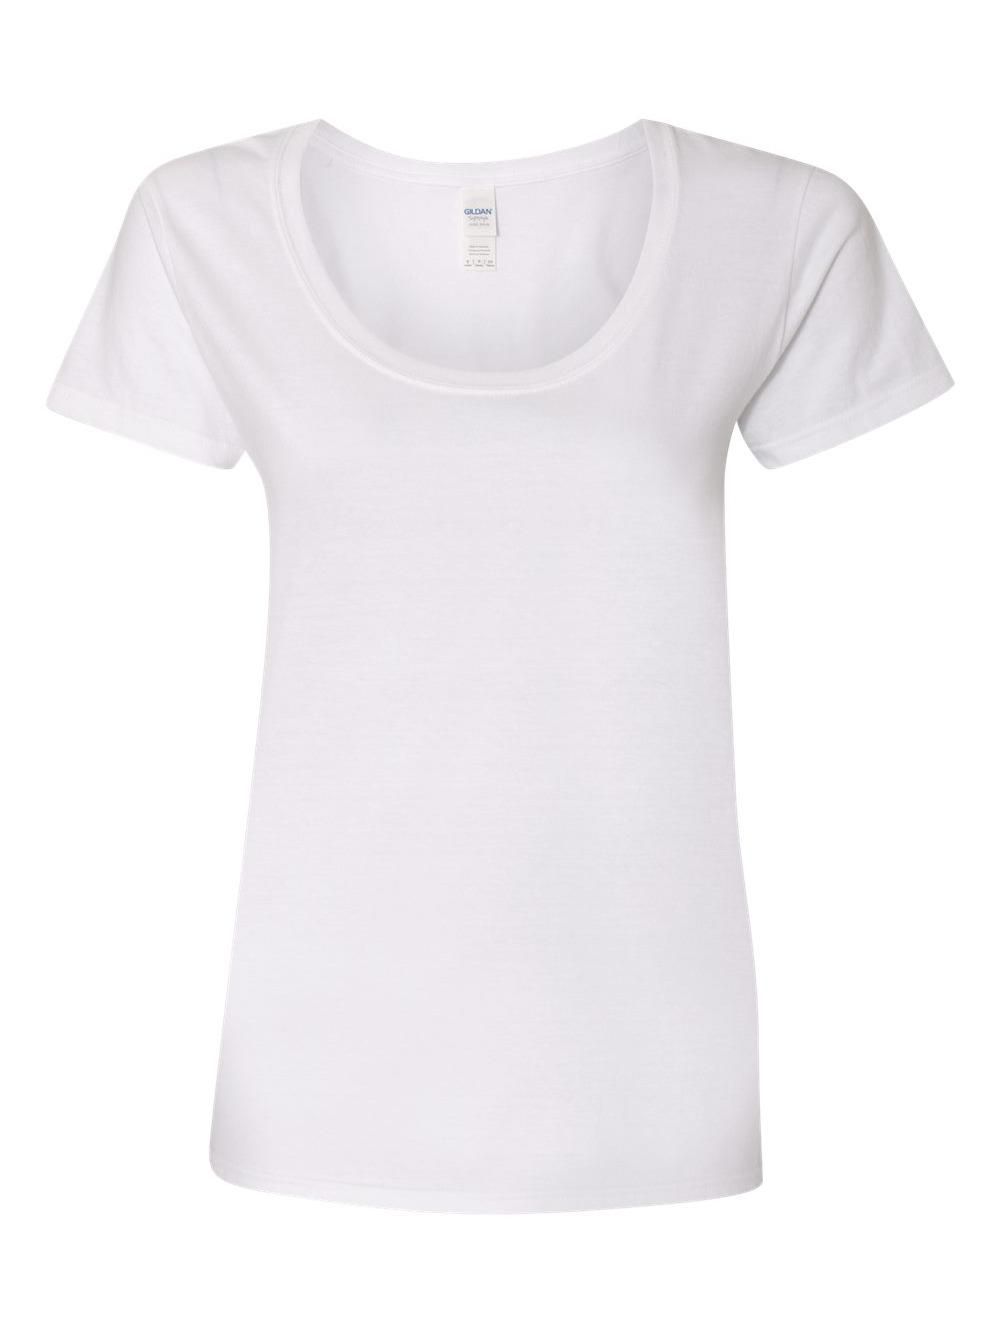 Gildan-Softstyle-Women-039-s-Deep-Scoopneck-T-Shirt-64550L thumbnail 48